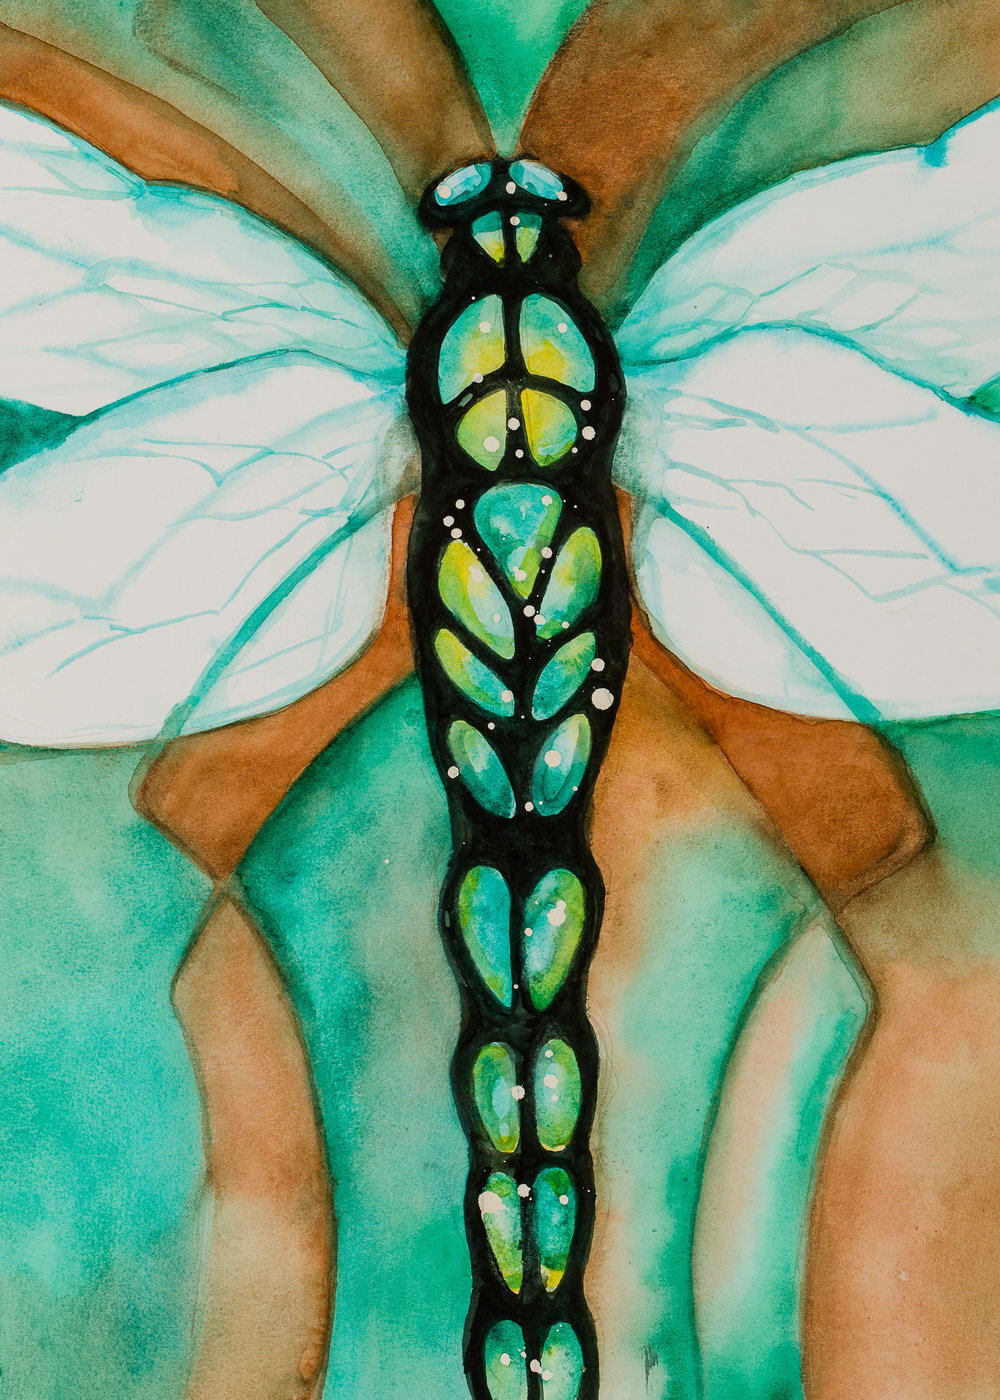 WINGS    Click on image for size and material options.   Prints Available from $59 - $190  Authentic Watercolor on Archival Paper  Original Art Sold  2001  Artist: Karen Thornberg